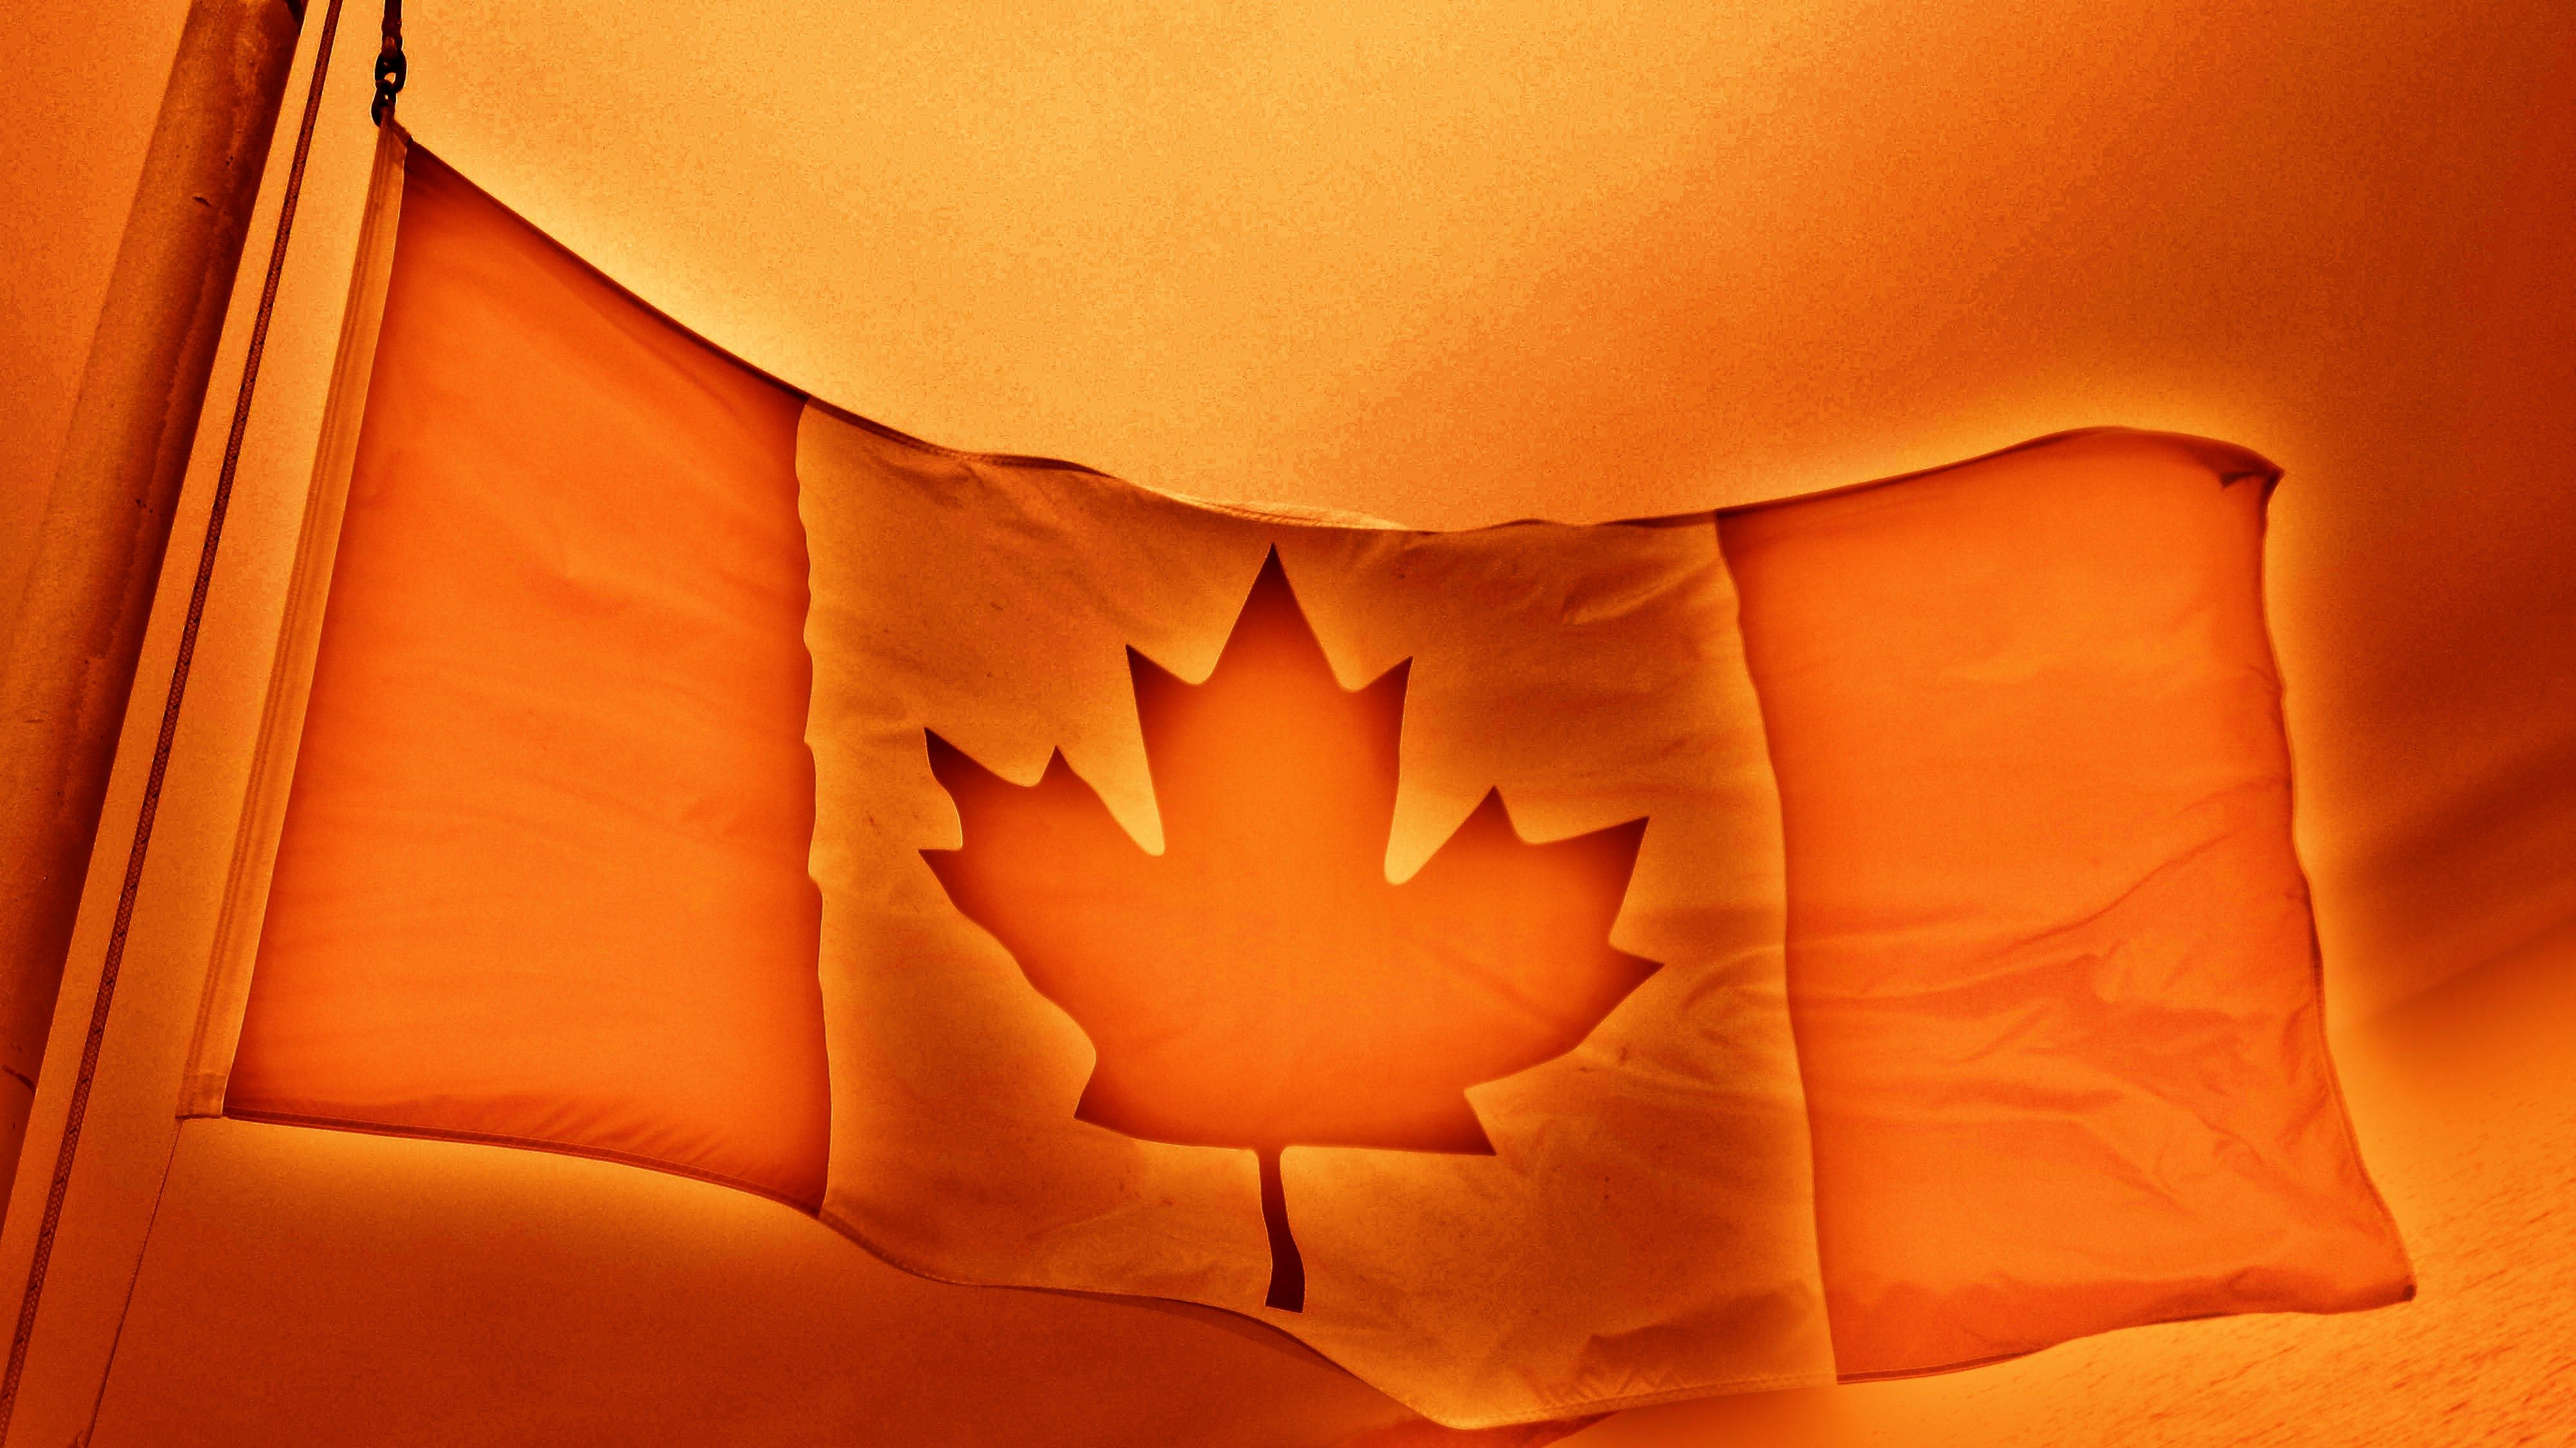 Canada flag hd wallpapers hd wallpapers - Canada flag wallpaper hd for iphone ...